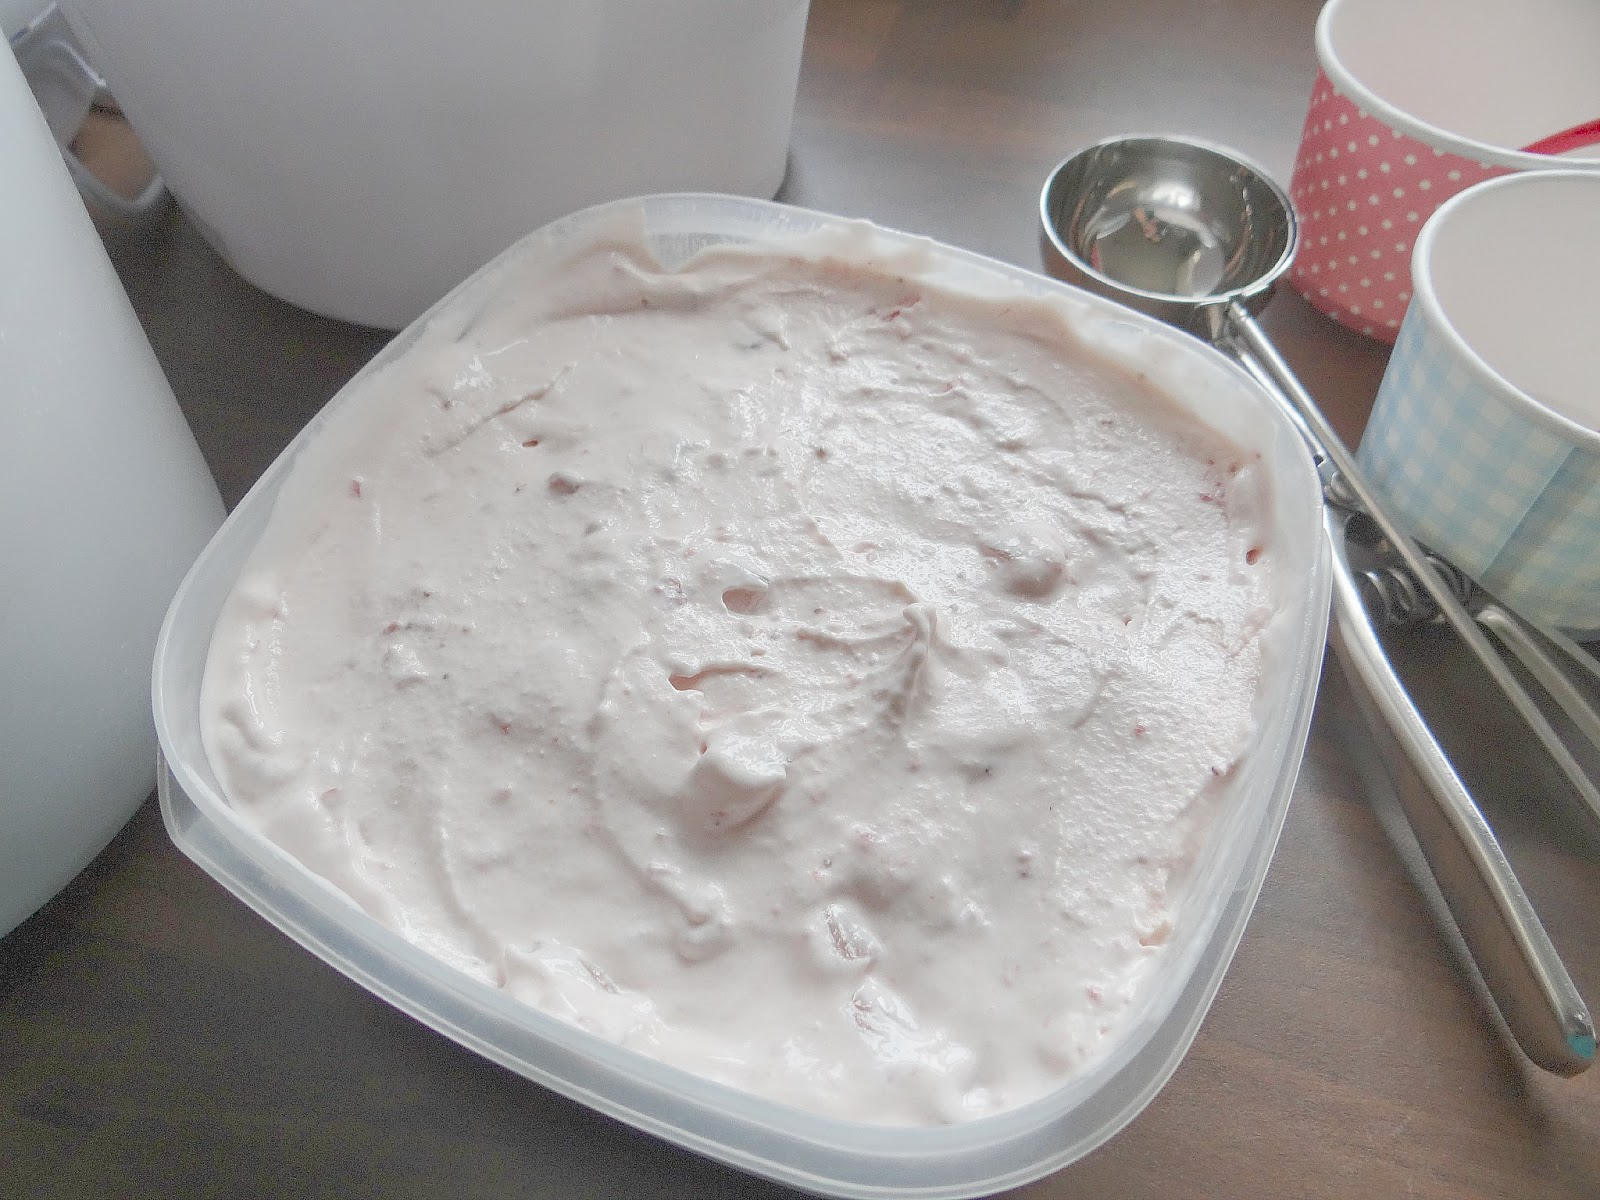 Ice-cream maker, Which? Guide recommended Ice-cream maker, Homemade strawberry Ice-Cream